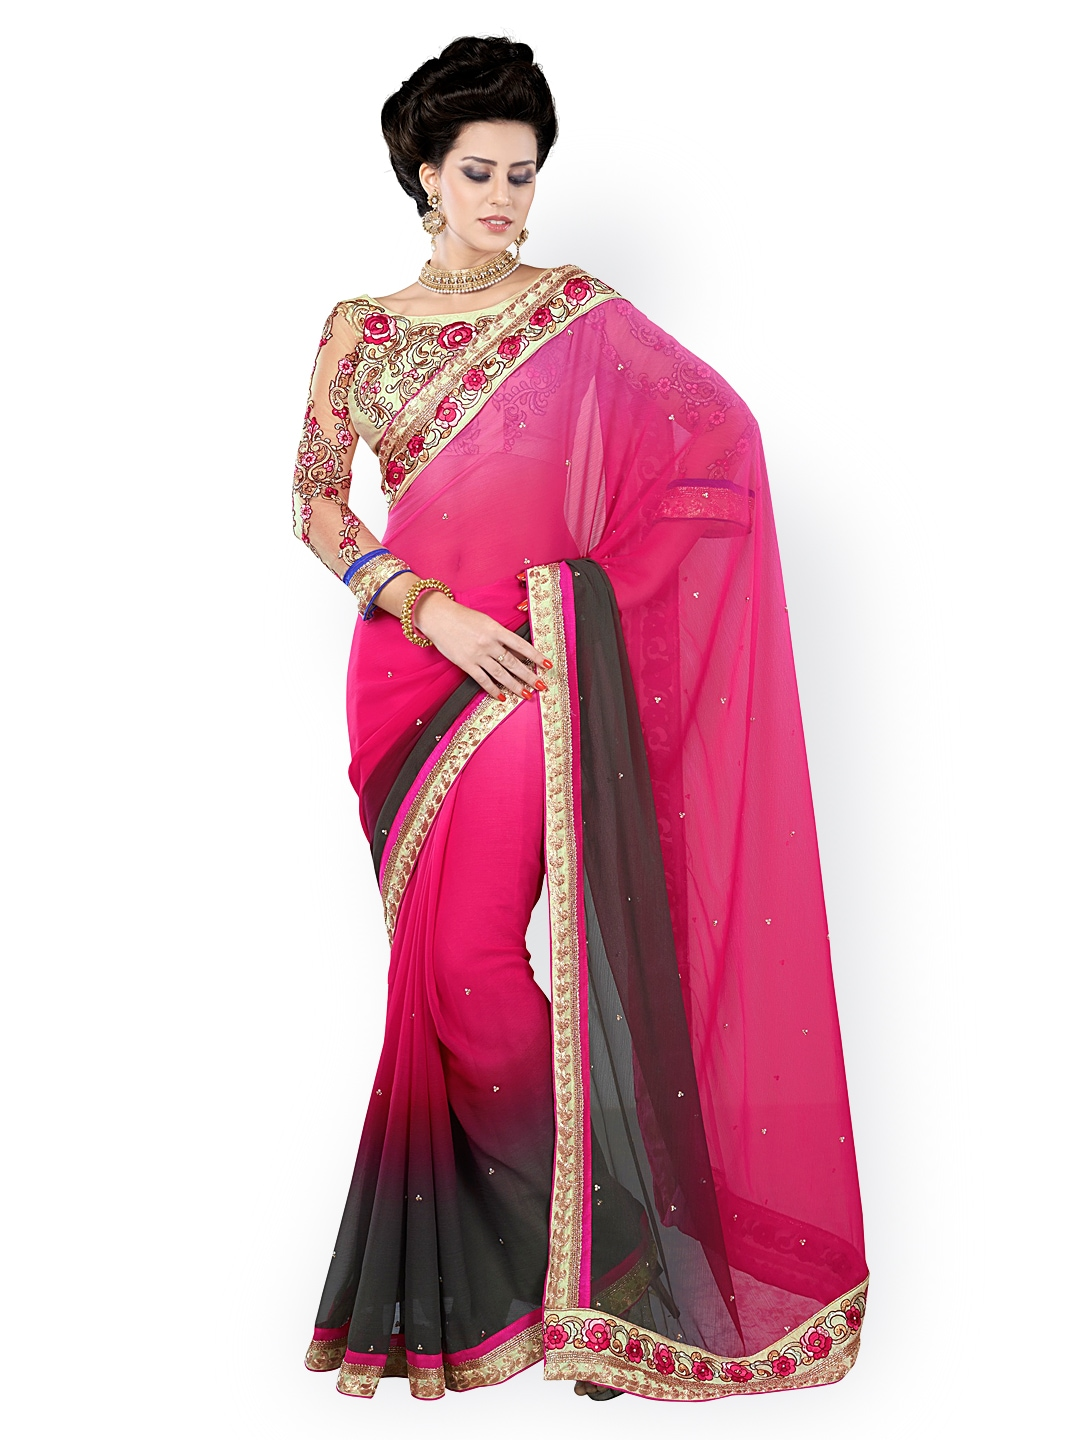 Myntra Kashish Lifestyle Pink Green Chiffon Fashion Saree 631150 Buy Myntra Kashish